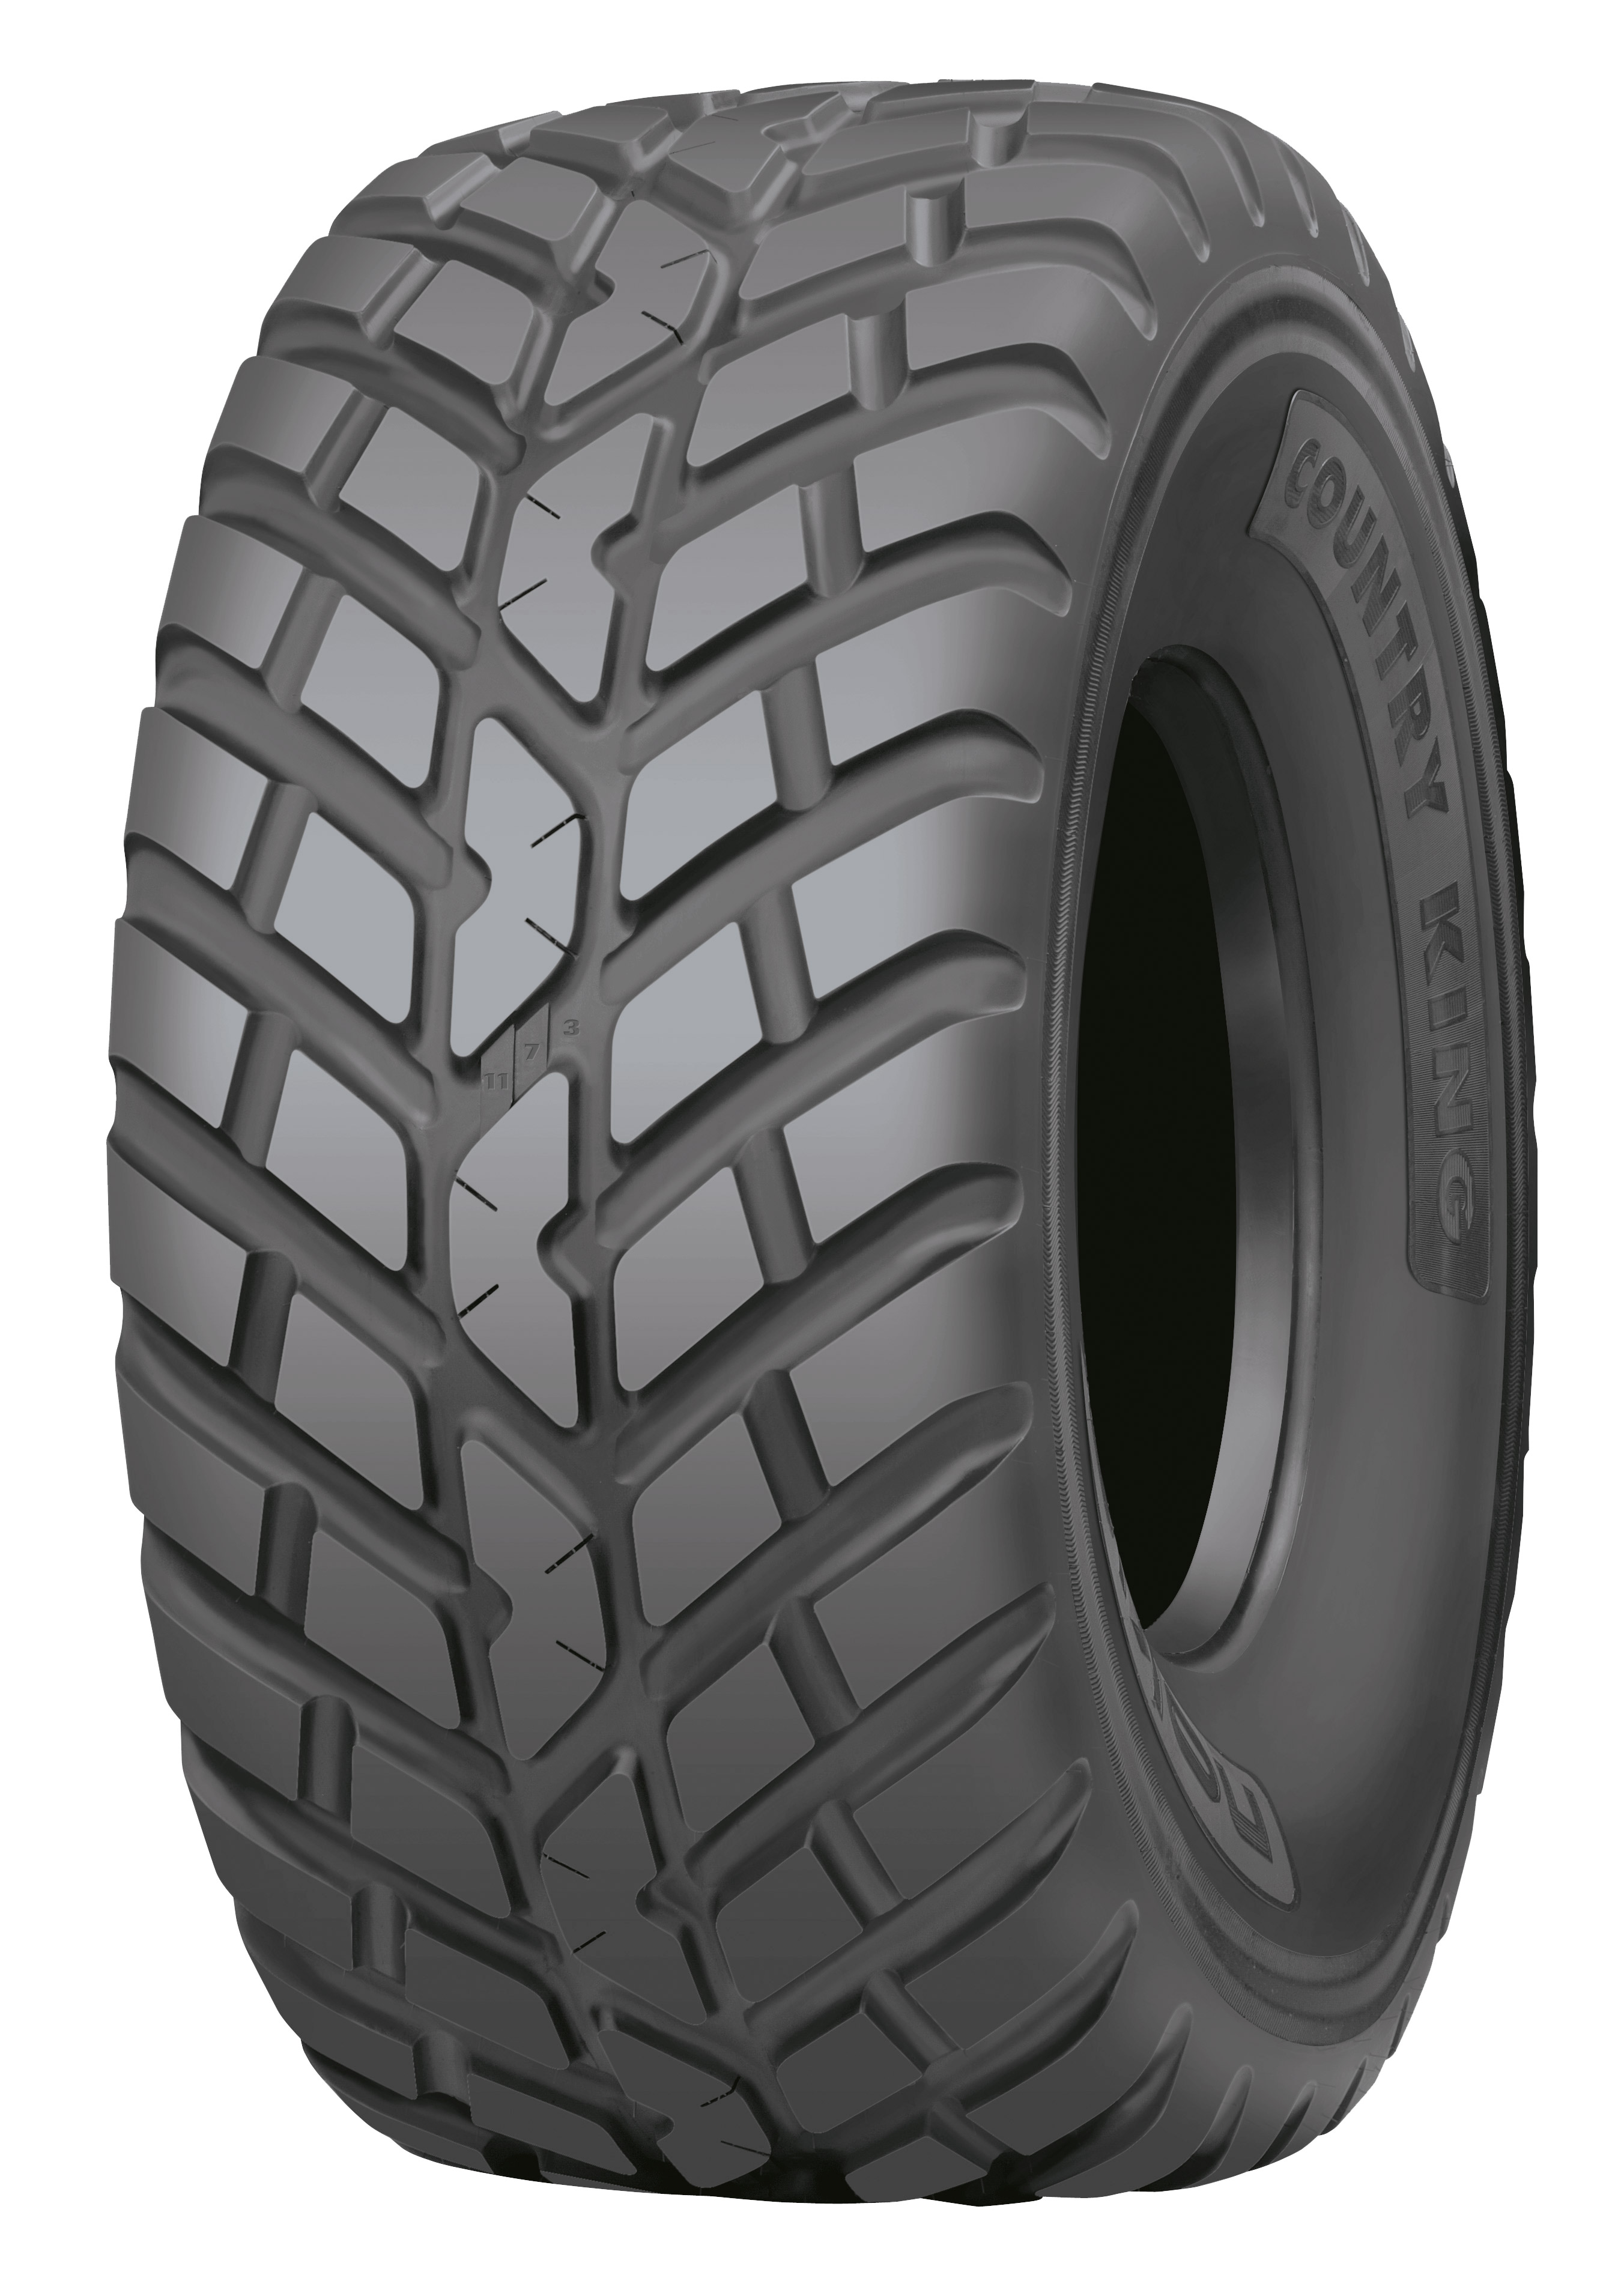 710/35R22.5 NOKIAN COUNTRY KING 157D TL